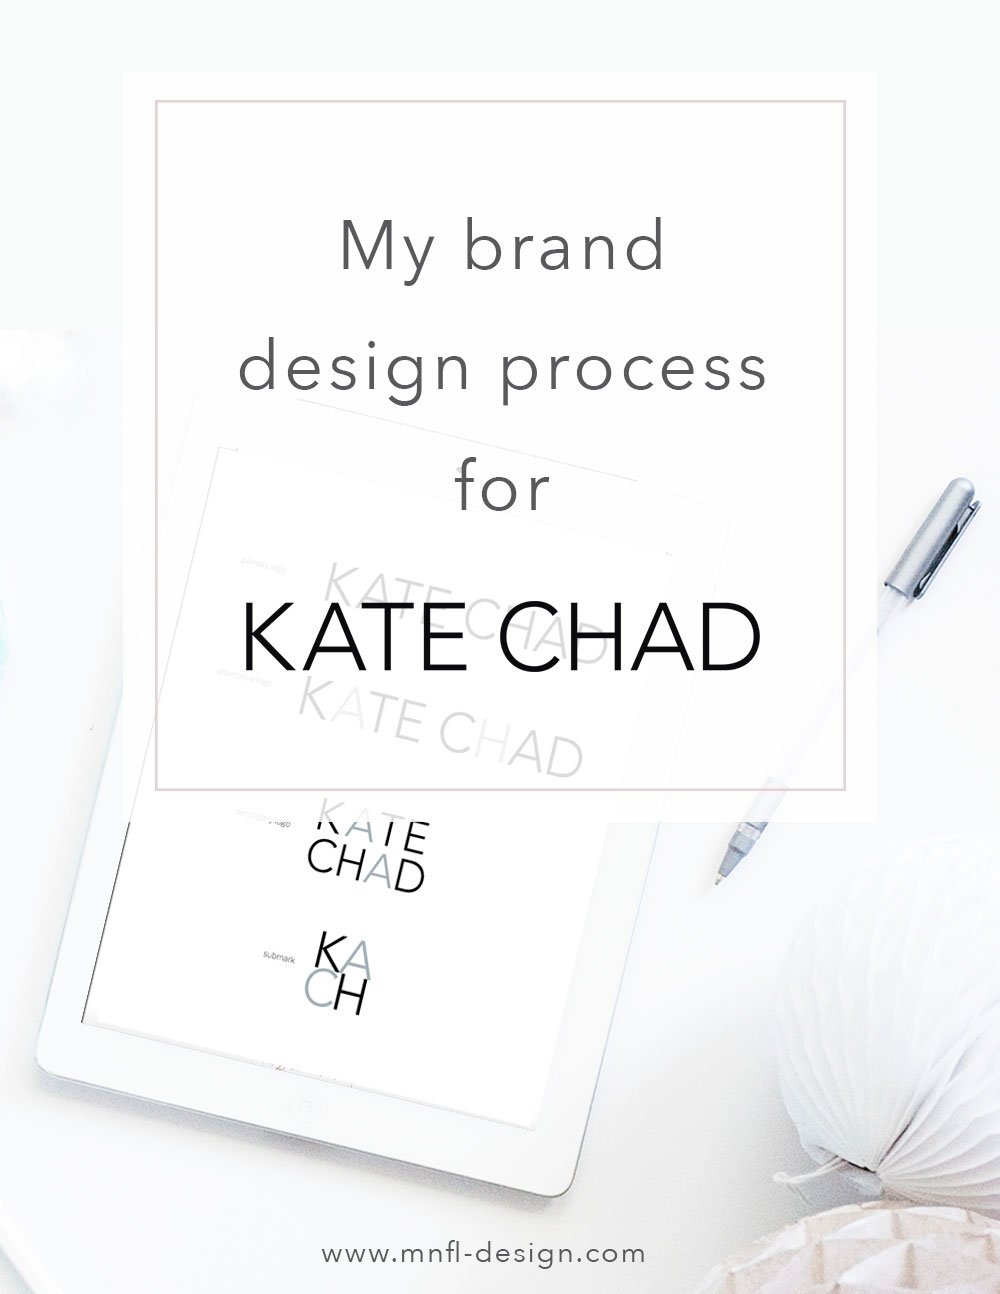 my brand design process for Kate Chad | MNFL Design